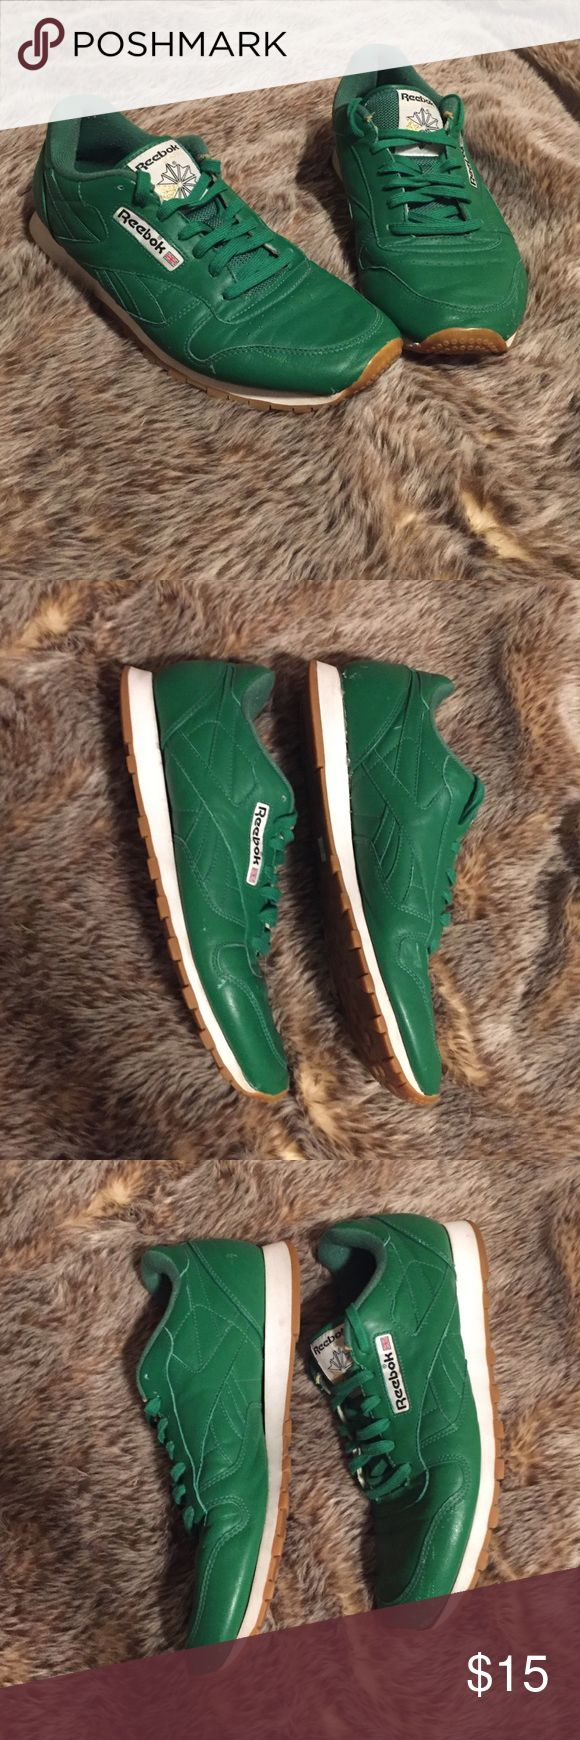 Retro green Reebok classics Reebok Classics. Have some wear to them but these are so retro and cool! It does look like the soles may have been glued on... not sure if this is how they were manufactured or if the previous owner did this (I bought them used at a vintage shop). May need additional glue at some point to make sure the sole stays on. Please be aware of this before you decide to purchase. Ask any questions! Reebok Shoes Sneakers